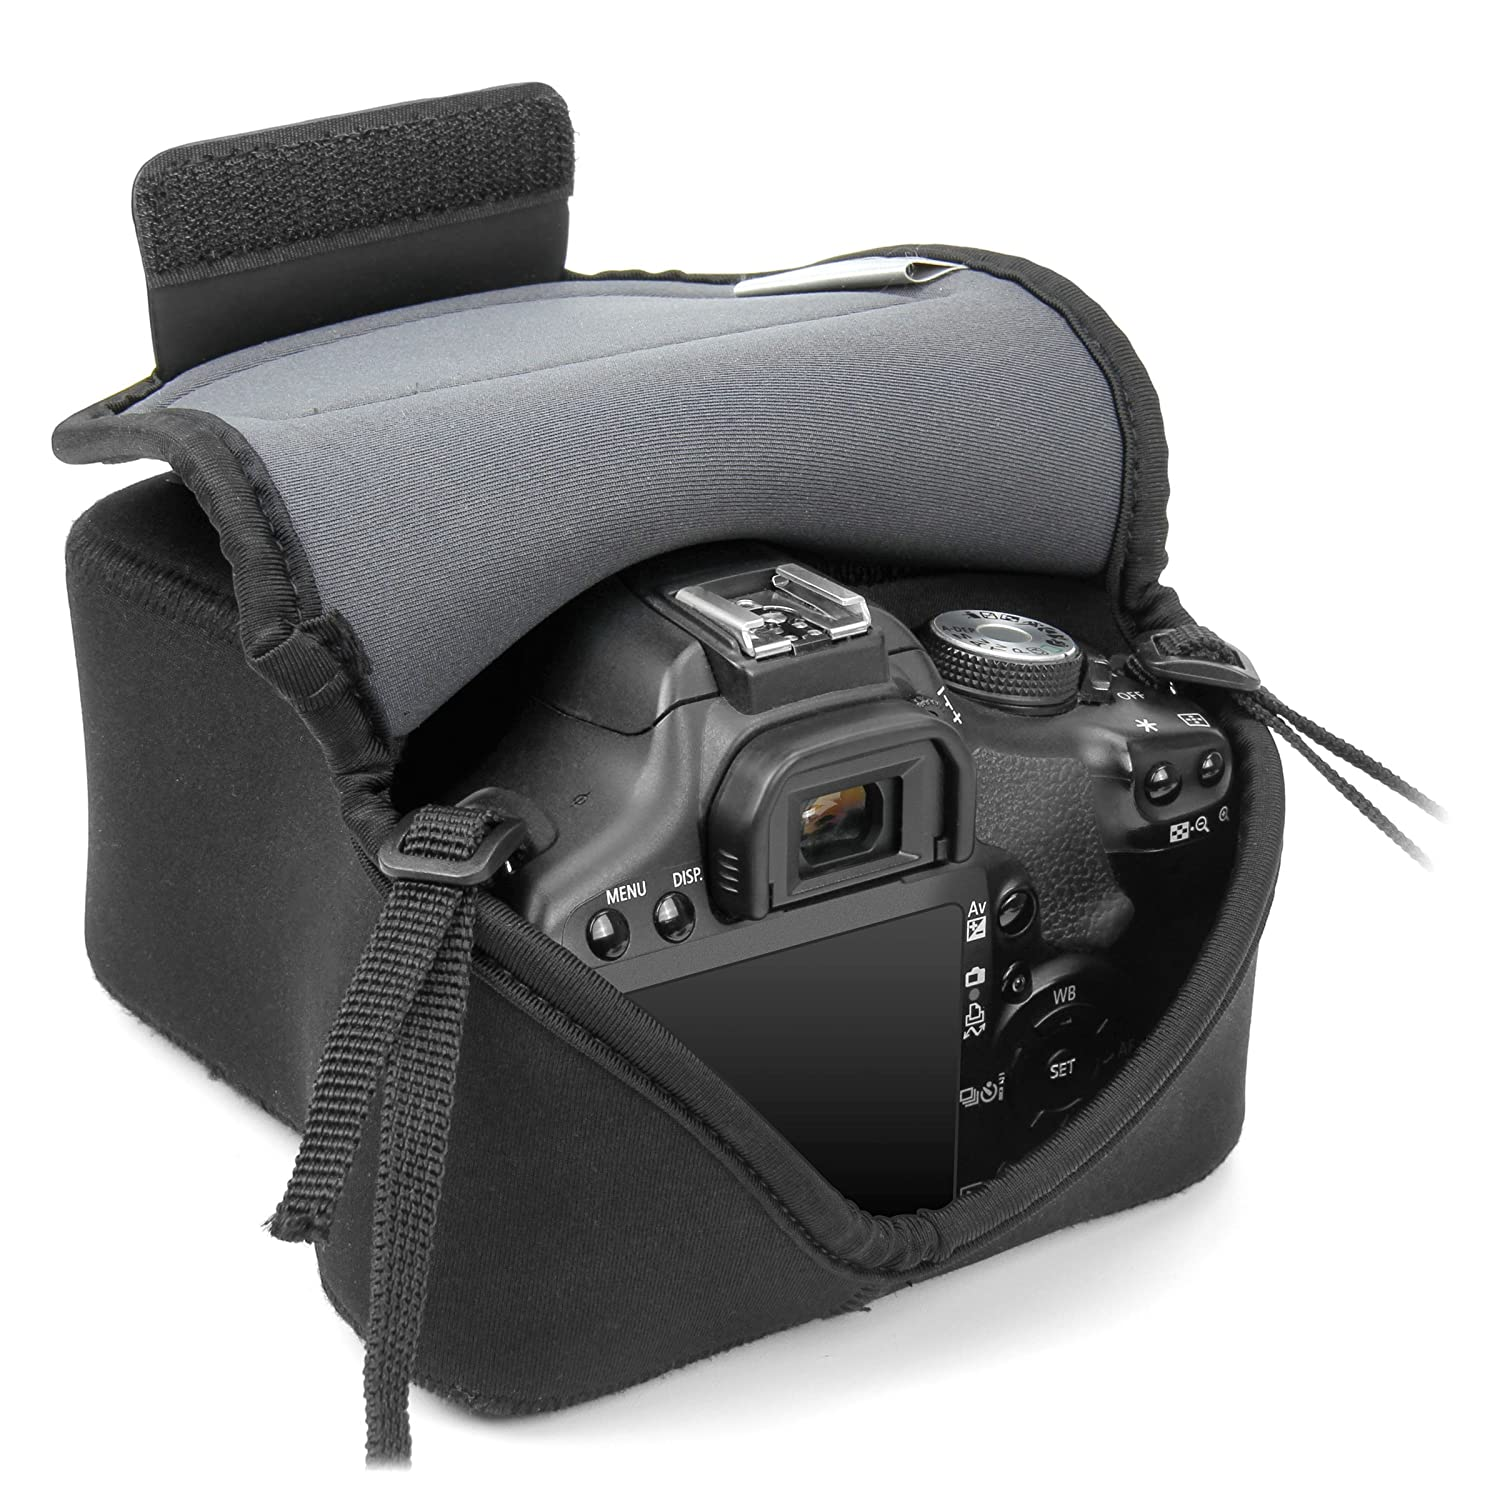 Camera Canon Dslr Camera Usa amazon com usa gear duraneoprene dslr flexarmor sleeve case works with nikon d3400 canon eos rebel t6 pentax k 70 and many other